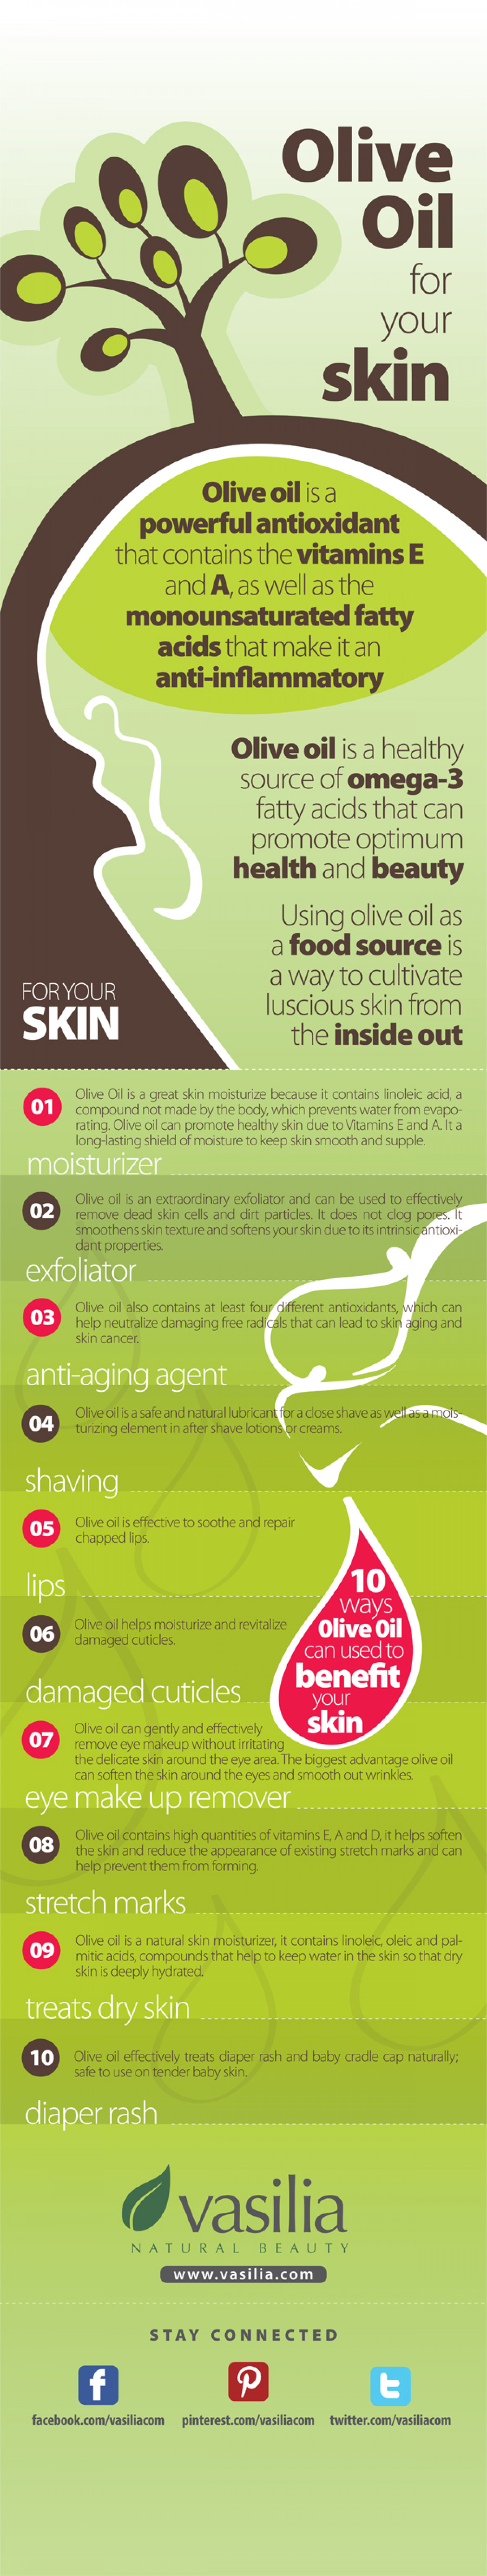 Olive Oil for Skin Infographic